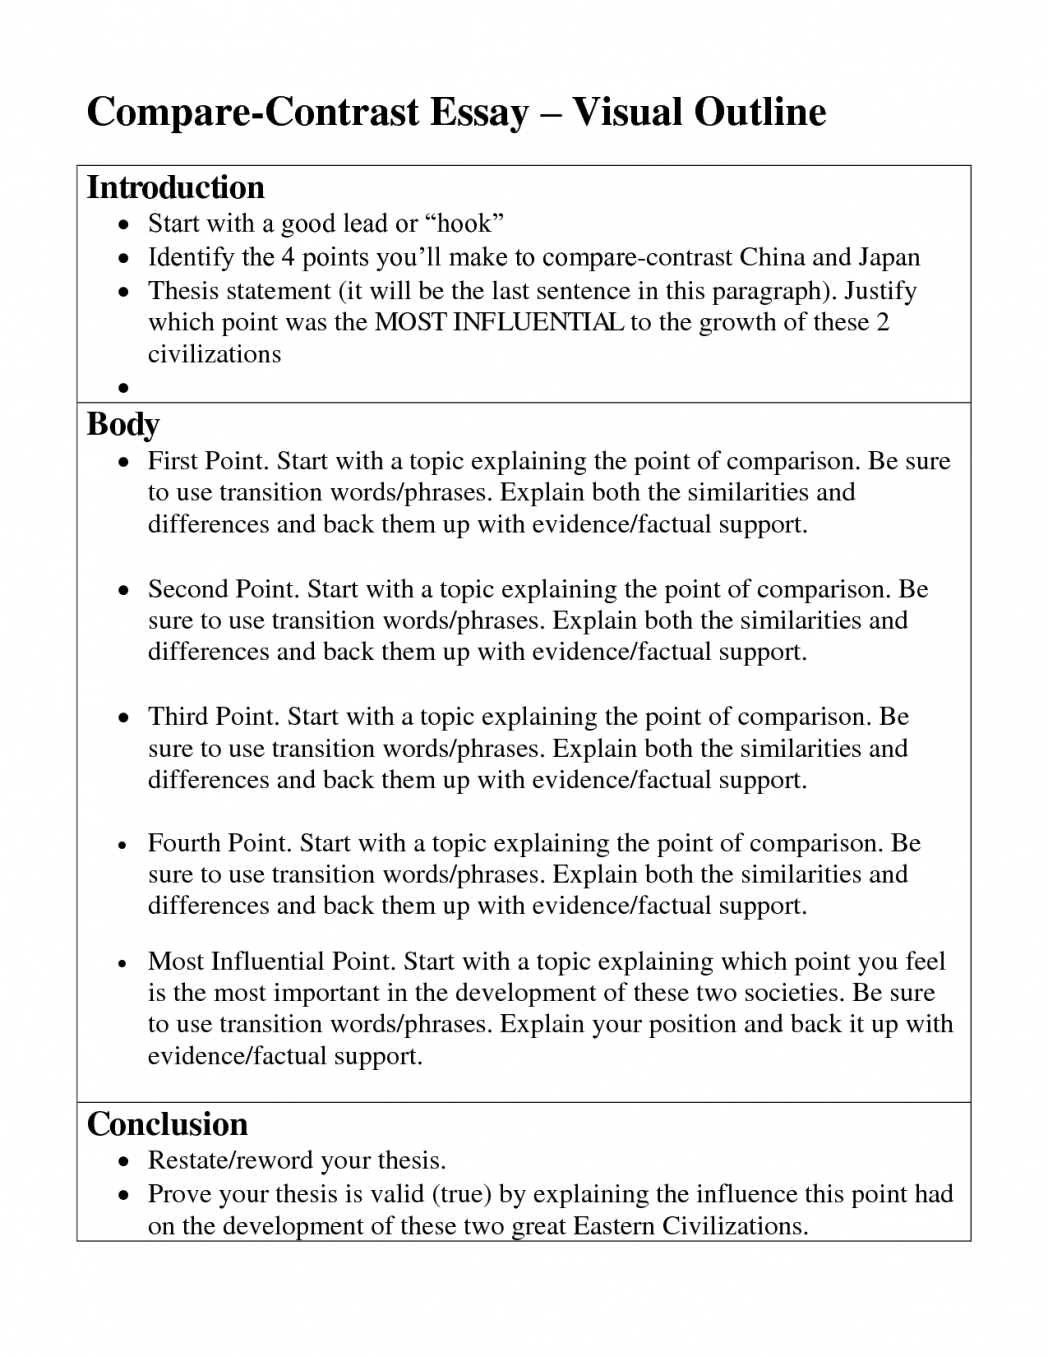 011 Compare And Contrast Essay Topics For High School Students English College Pdf Research Paper 1048x1356 Good Exceptional Elementary In The Medical Field Full